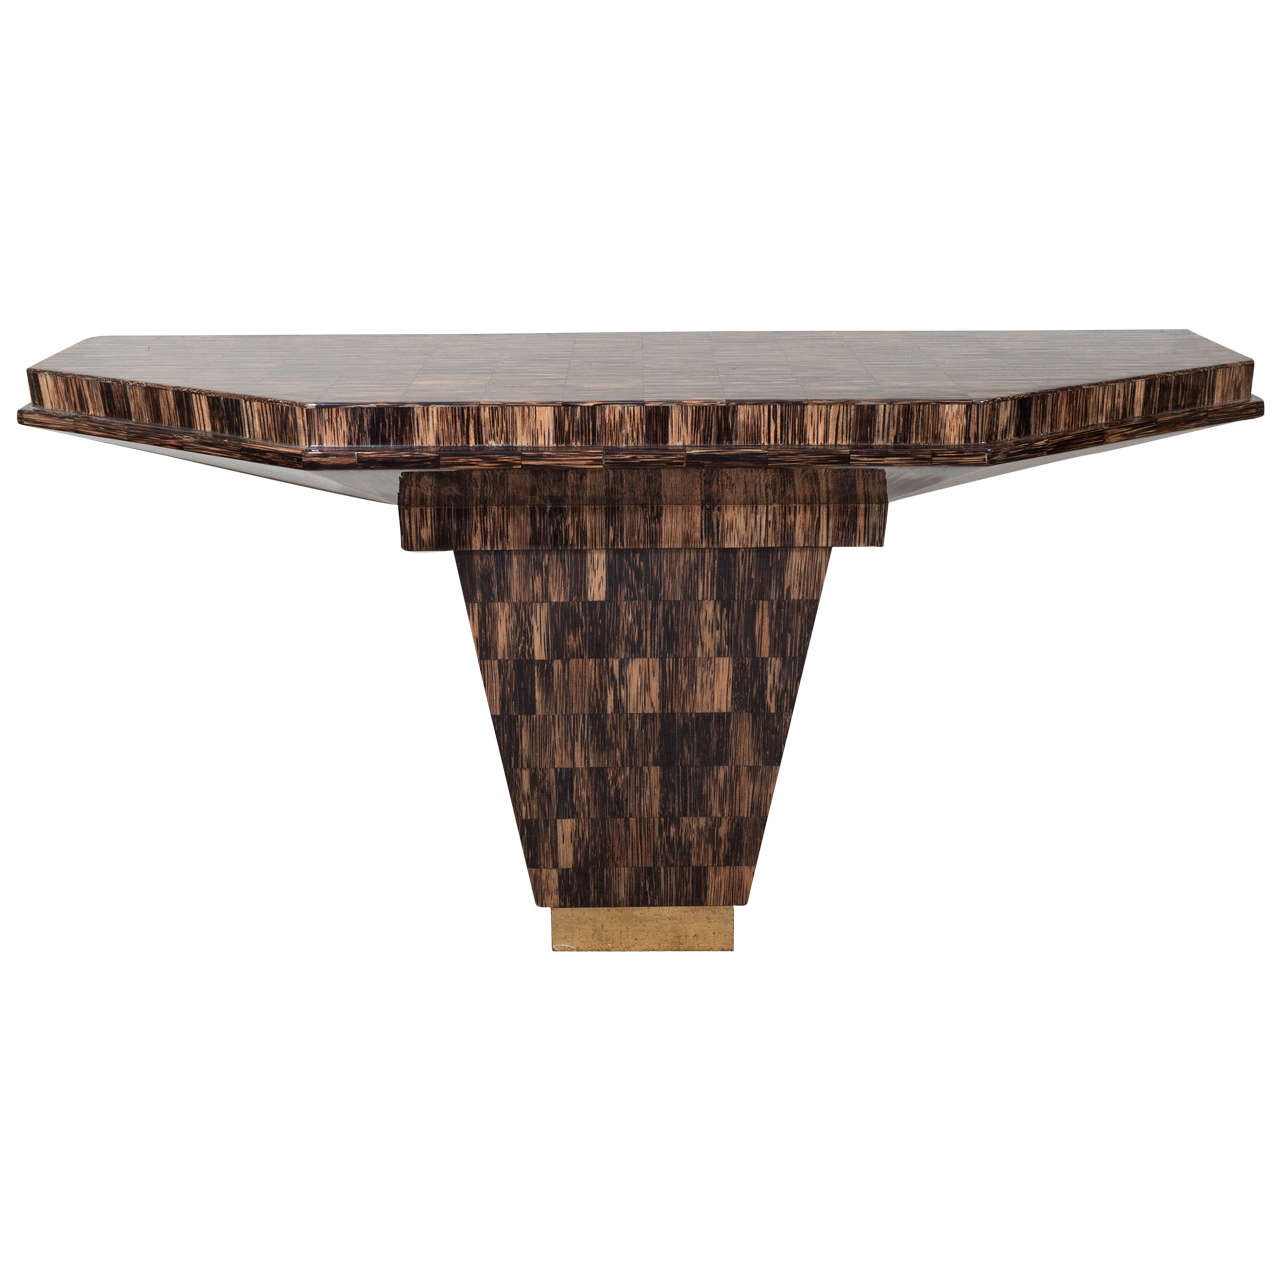 A Midcentury Tessellated Horn Console Table in the Style of Karl Springer